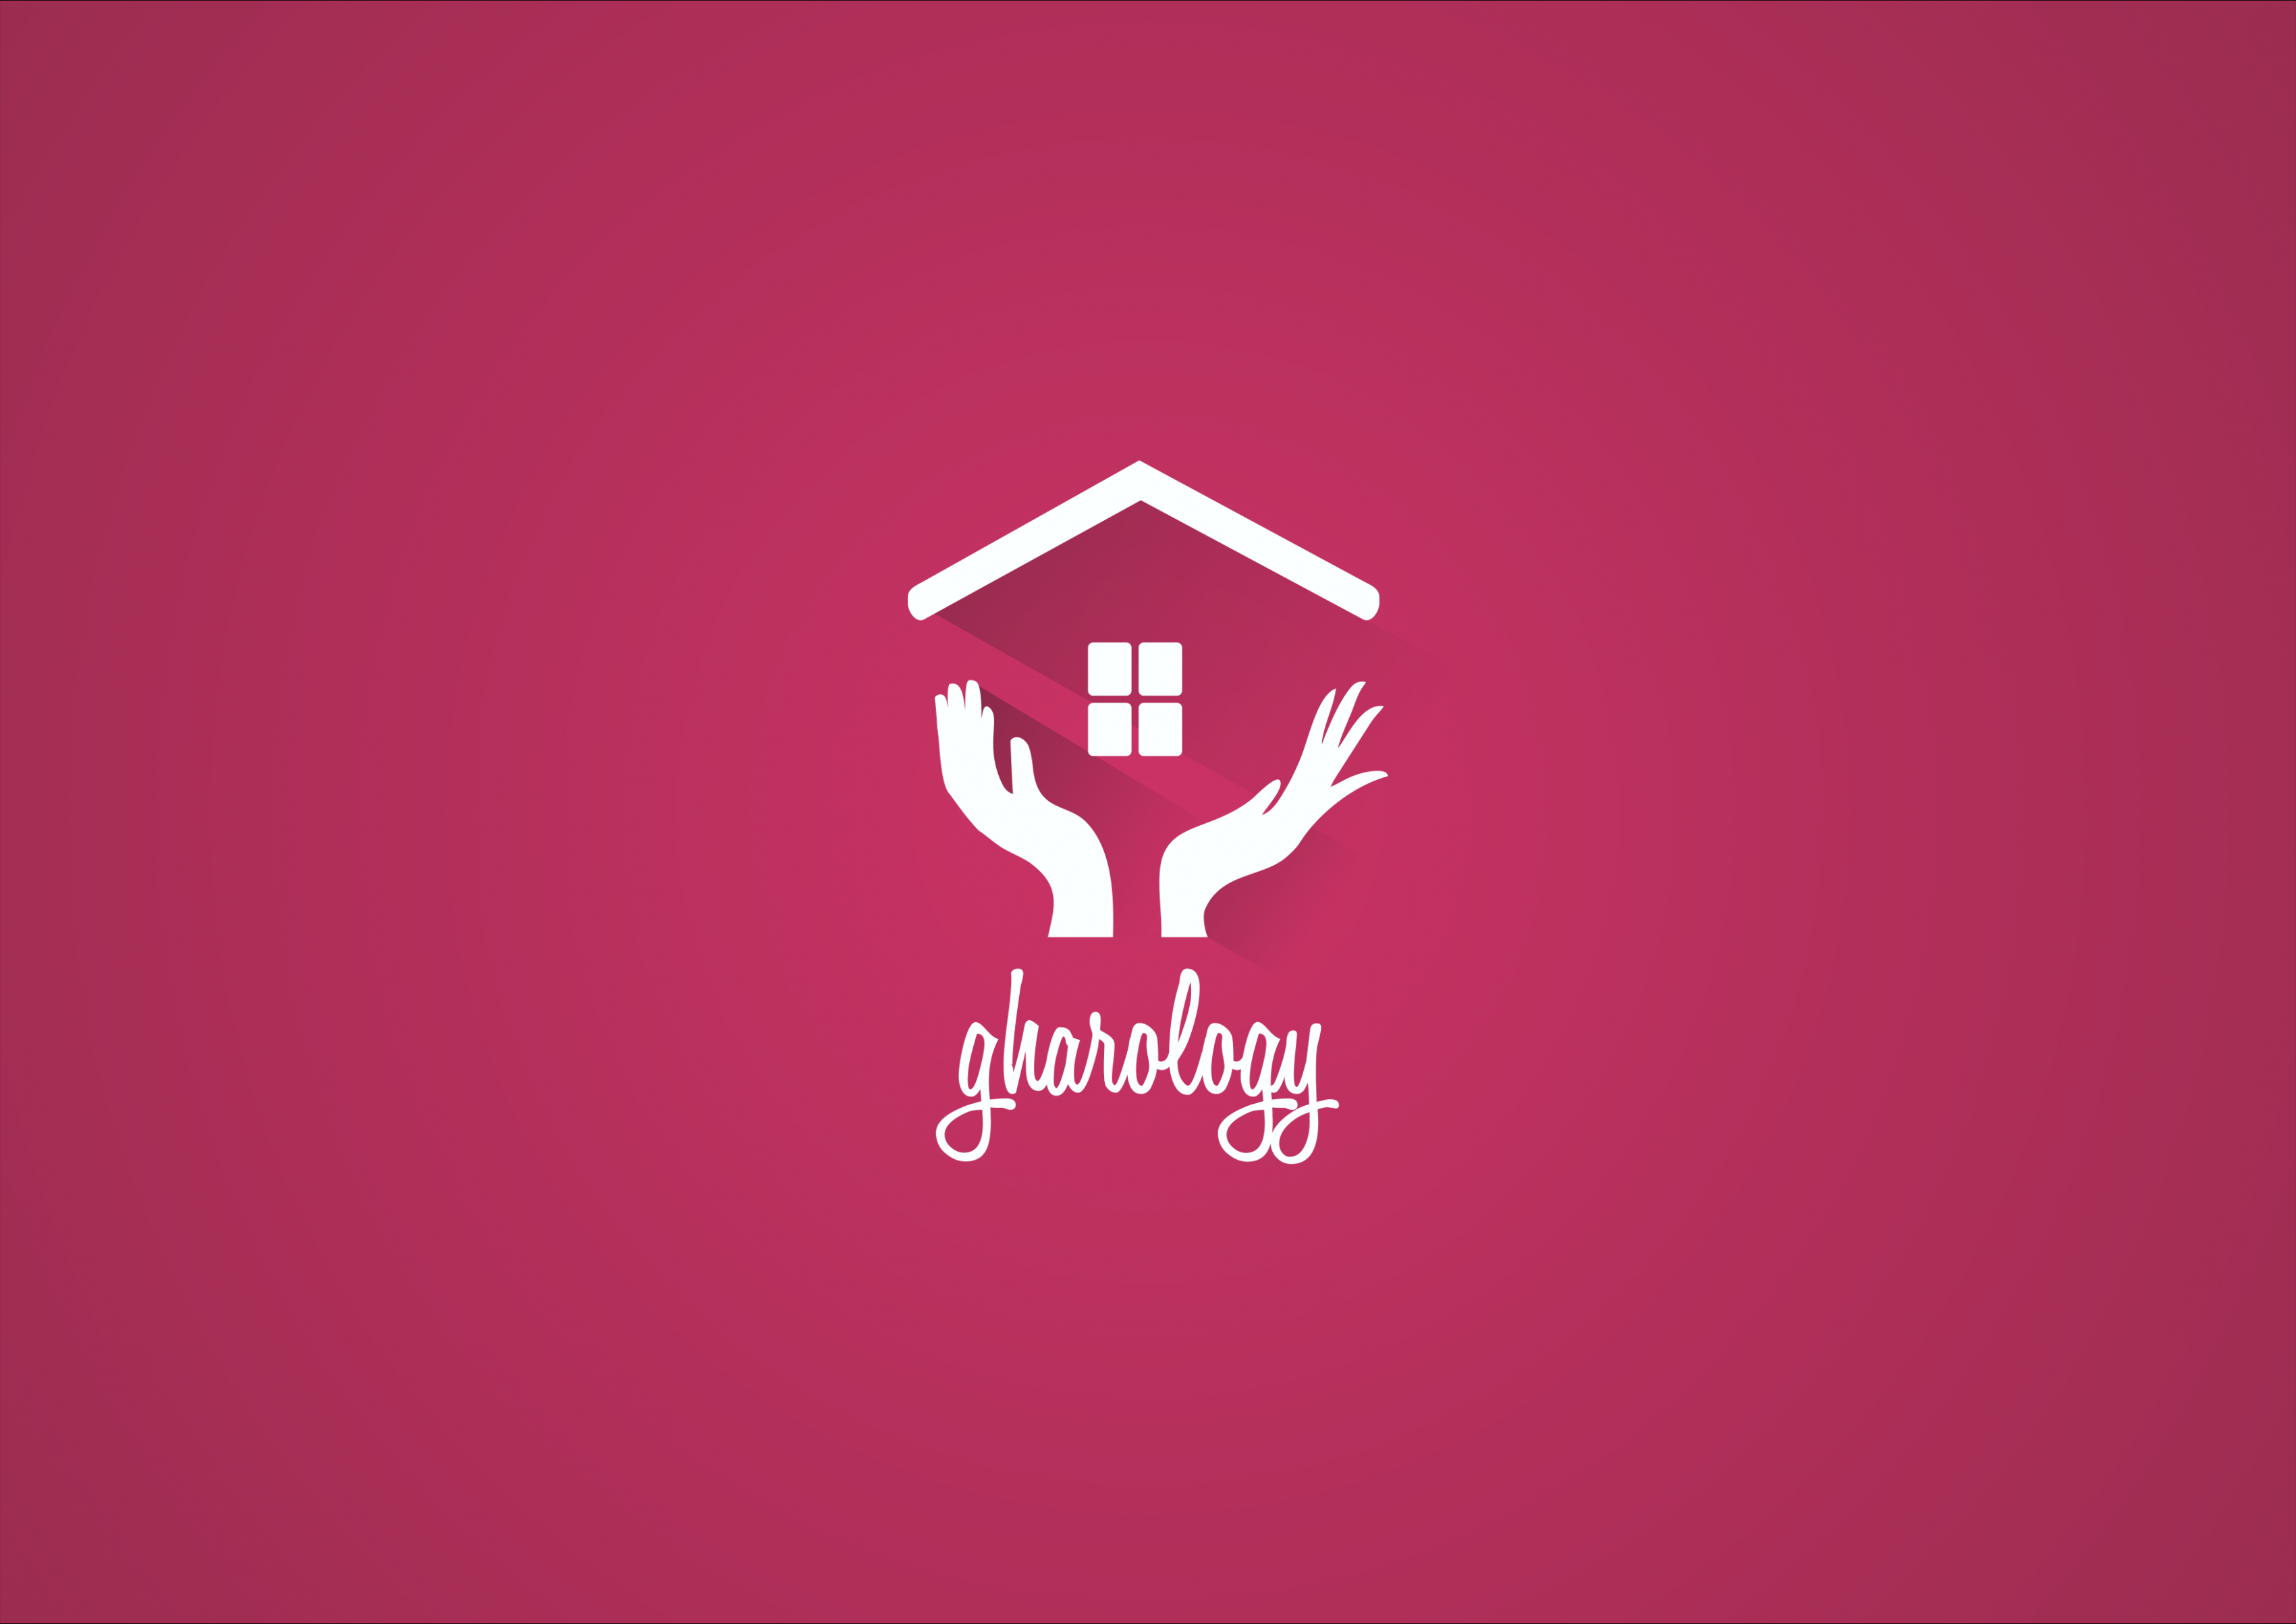 house logo inspiration | mycanvaaz (With images) | Logo design ..